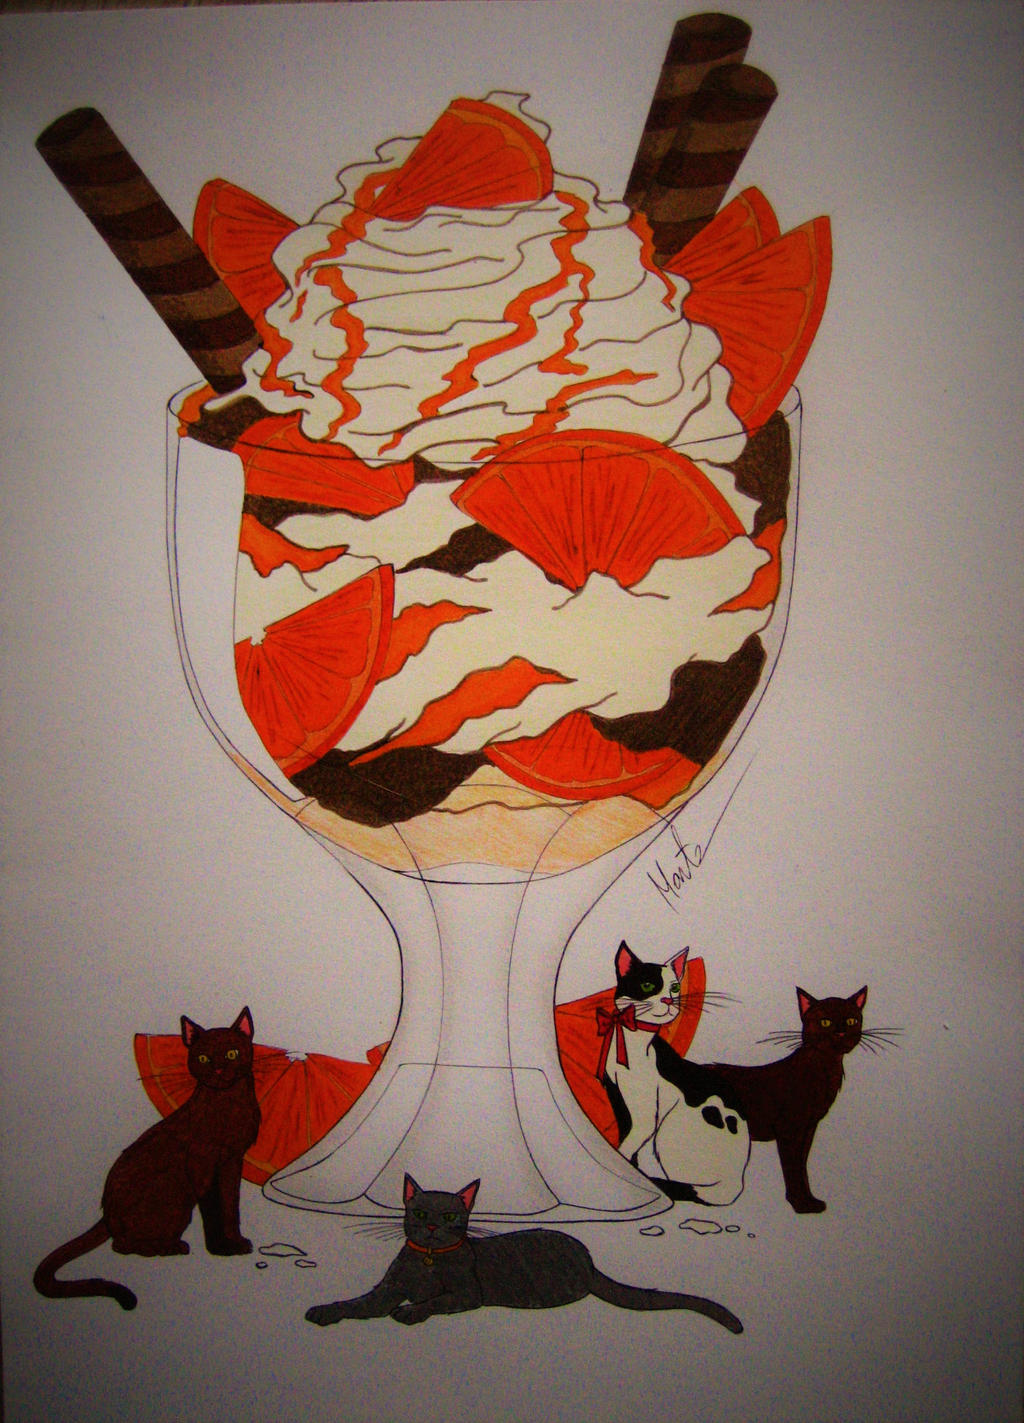 Dessert with cats by Natsu-chan-94